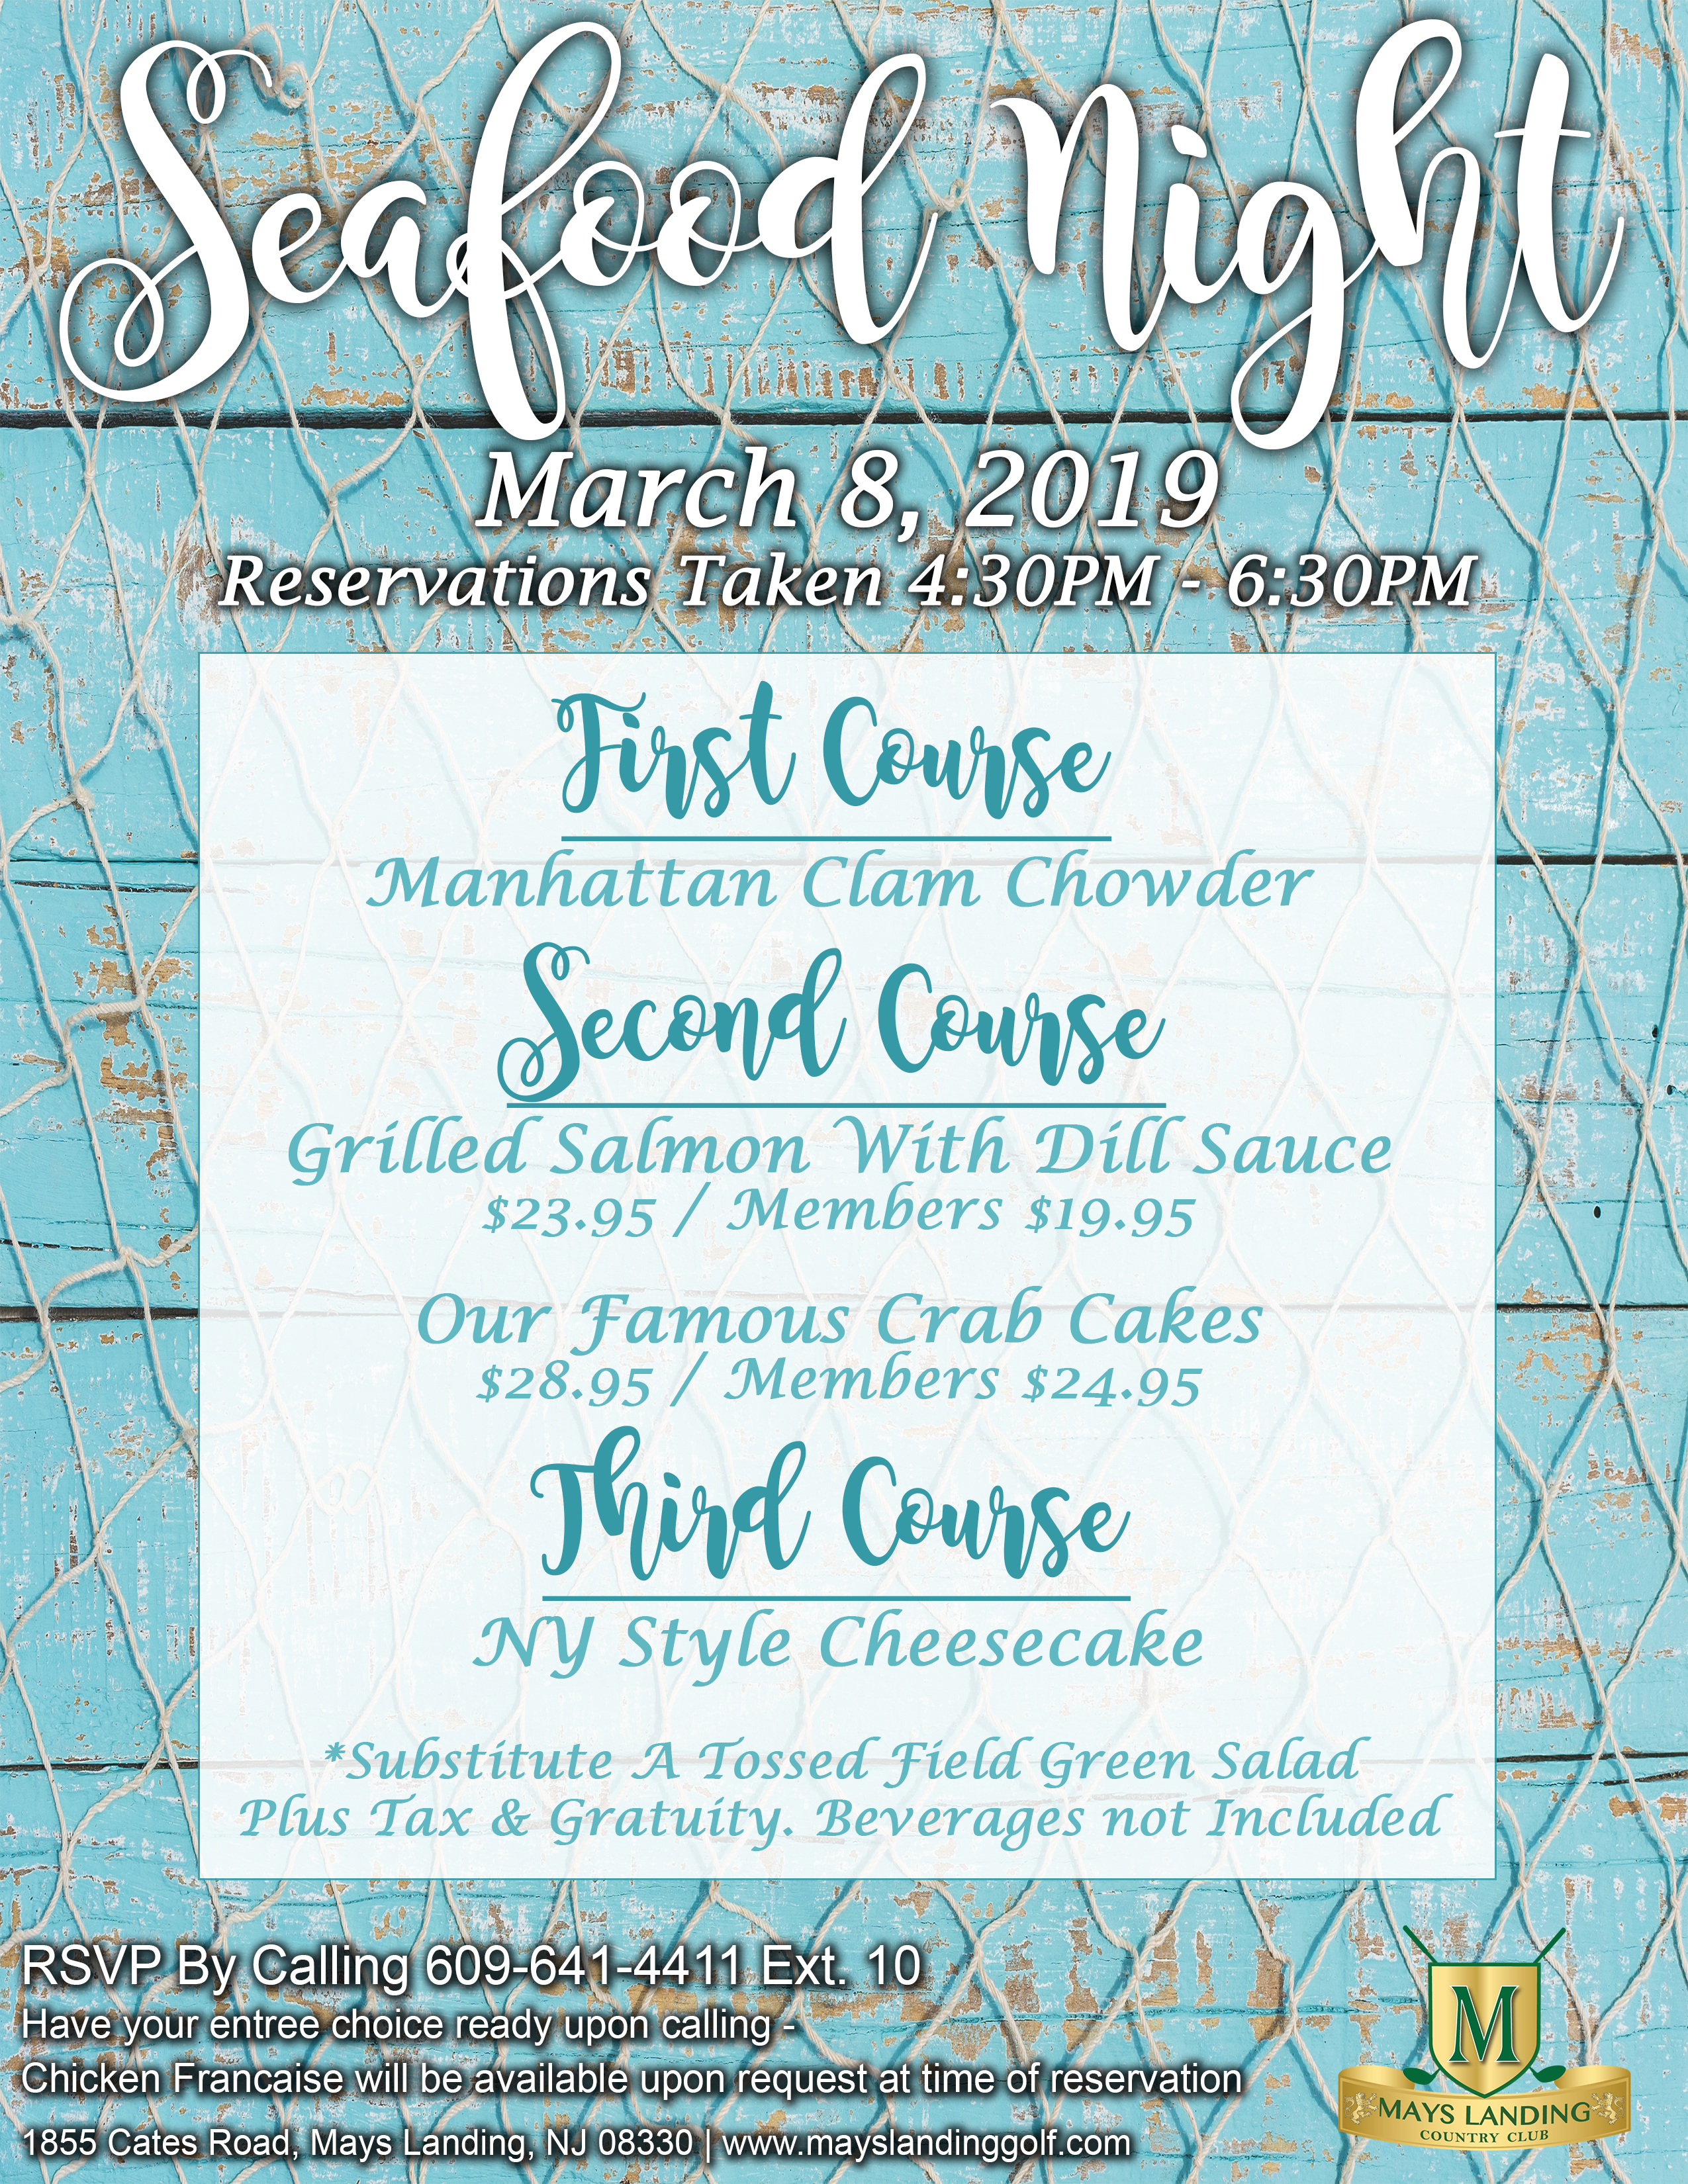 Seafood Night; First Course Manhattan Clam Chowder   Second Course  Grilled Salmon With Dill Sauce $23.95 / Members $19.95  Our Famous Crab Cakes $28.95 / Members $24.95  Third Course NY Style Cheesecake   *Substitute A Tossed Field Green Salad Plus Tax & Gratuity. Beverages not Included; RSVP By Calling 609-641-4411 Ext. 10 (Have your entree choice ready upon calling) 1855 Cates Road, Mays Landing, NJ 08330 | www.mayslandinggolf.com